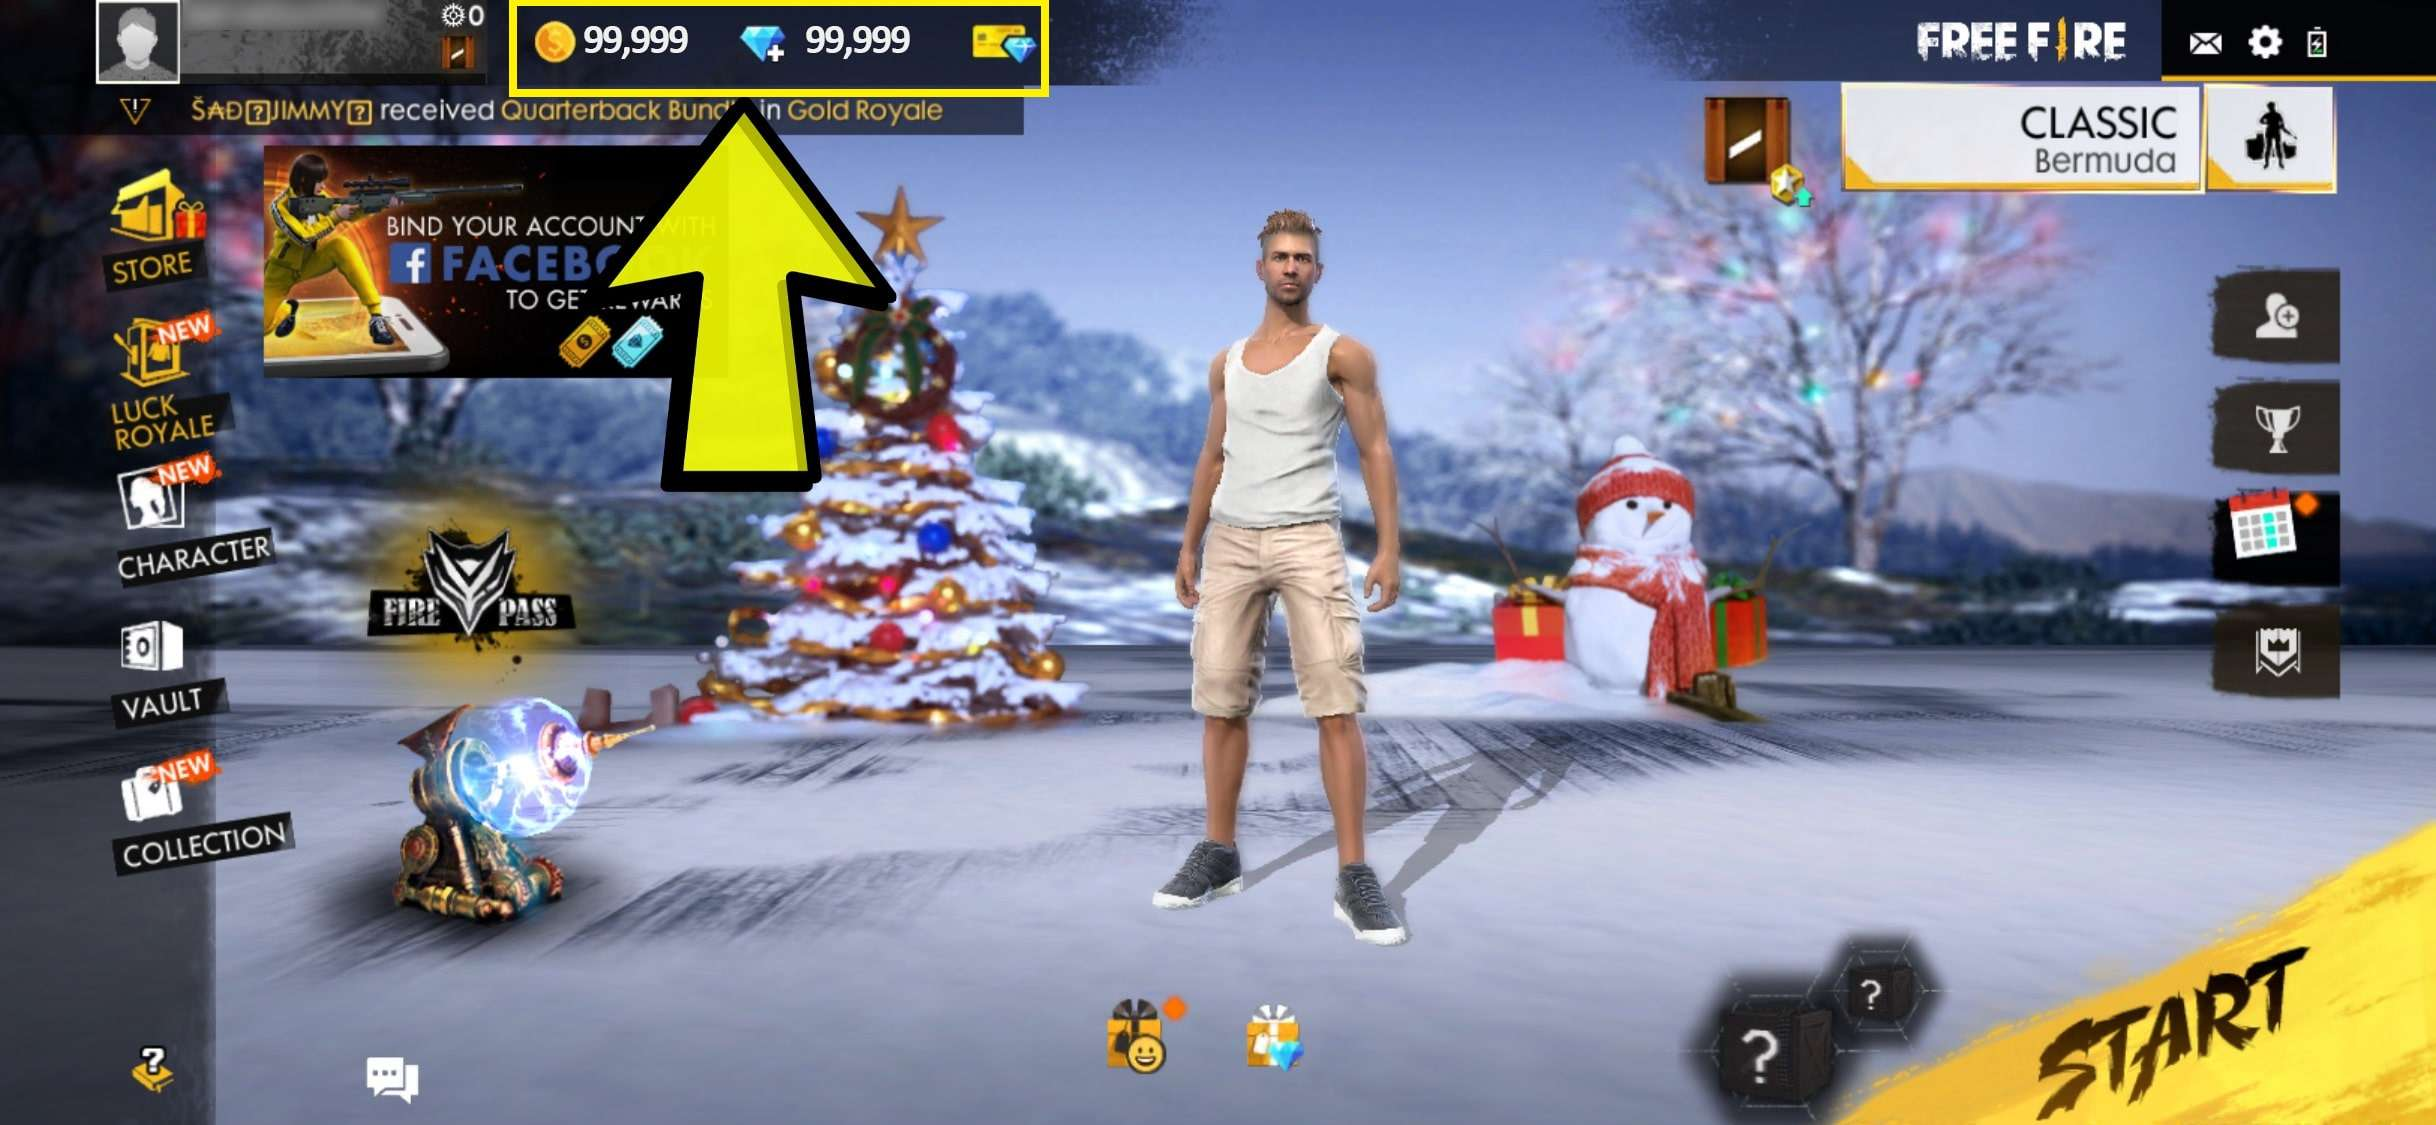 Get Unlimited Diamonds And Coins In Free Fire - Garena Free